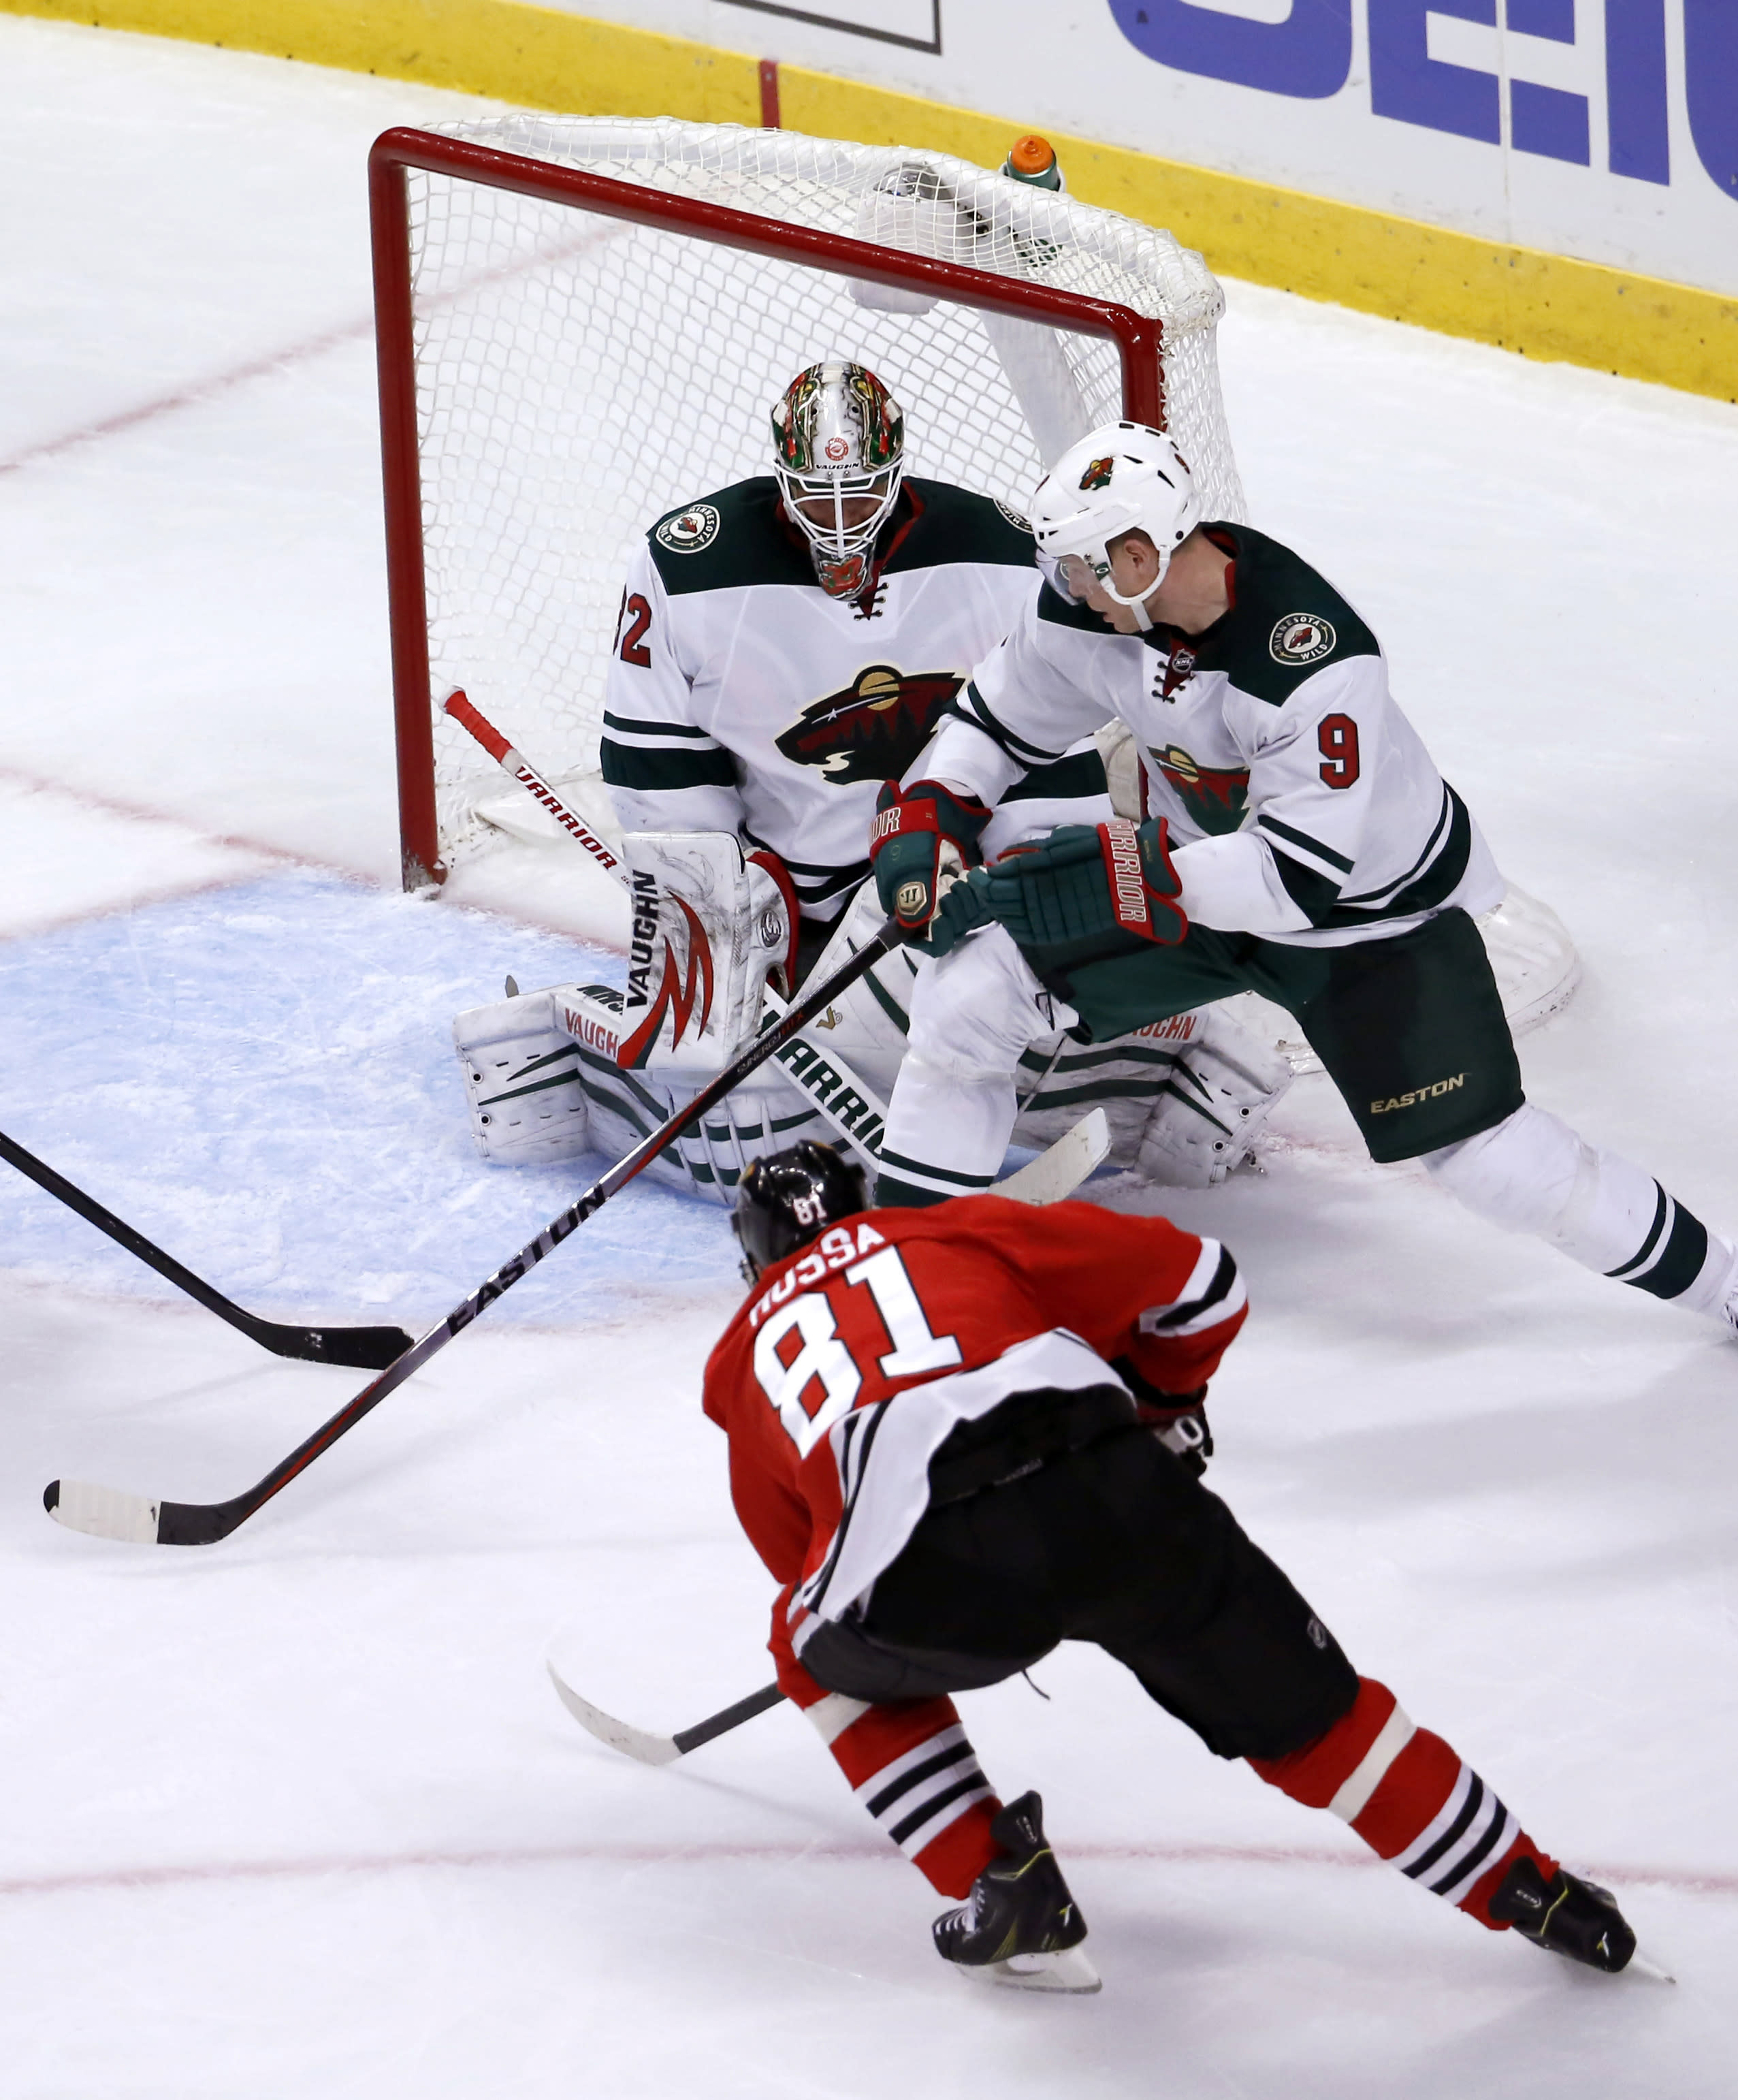 Kane's late goal lifts Blackhawks past Wild 5-3